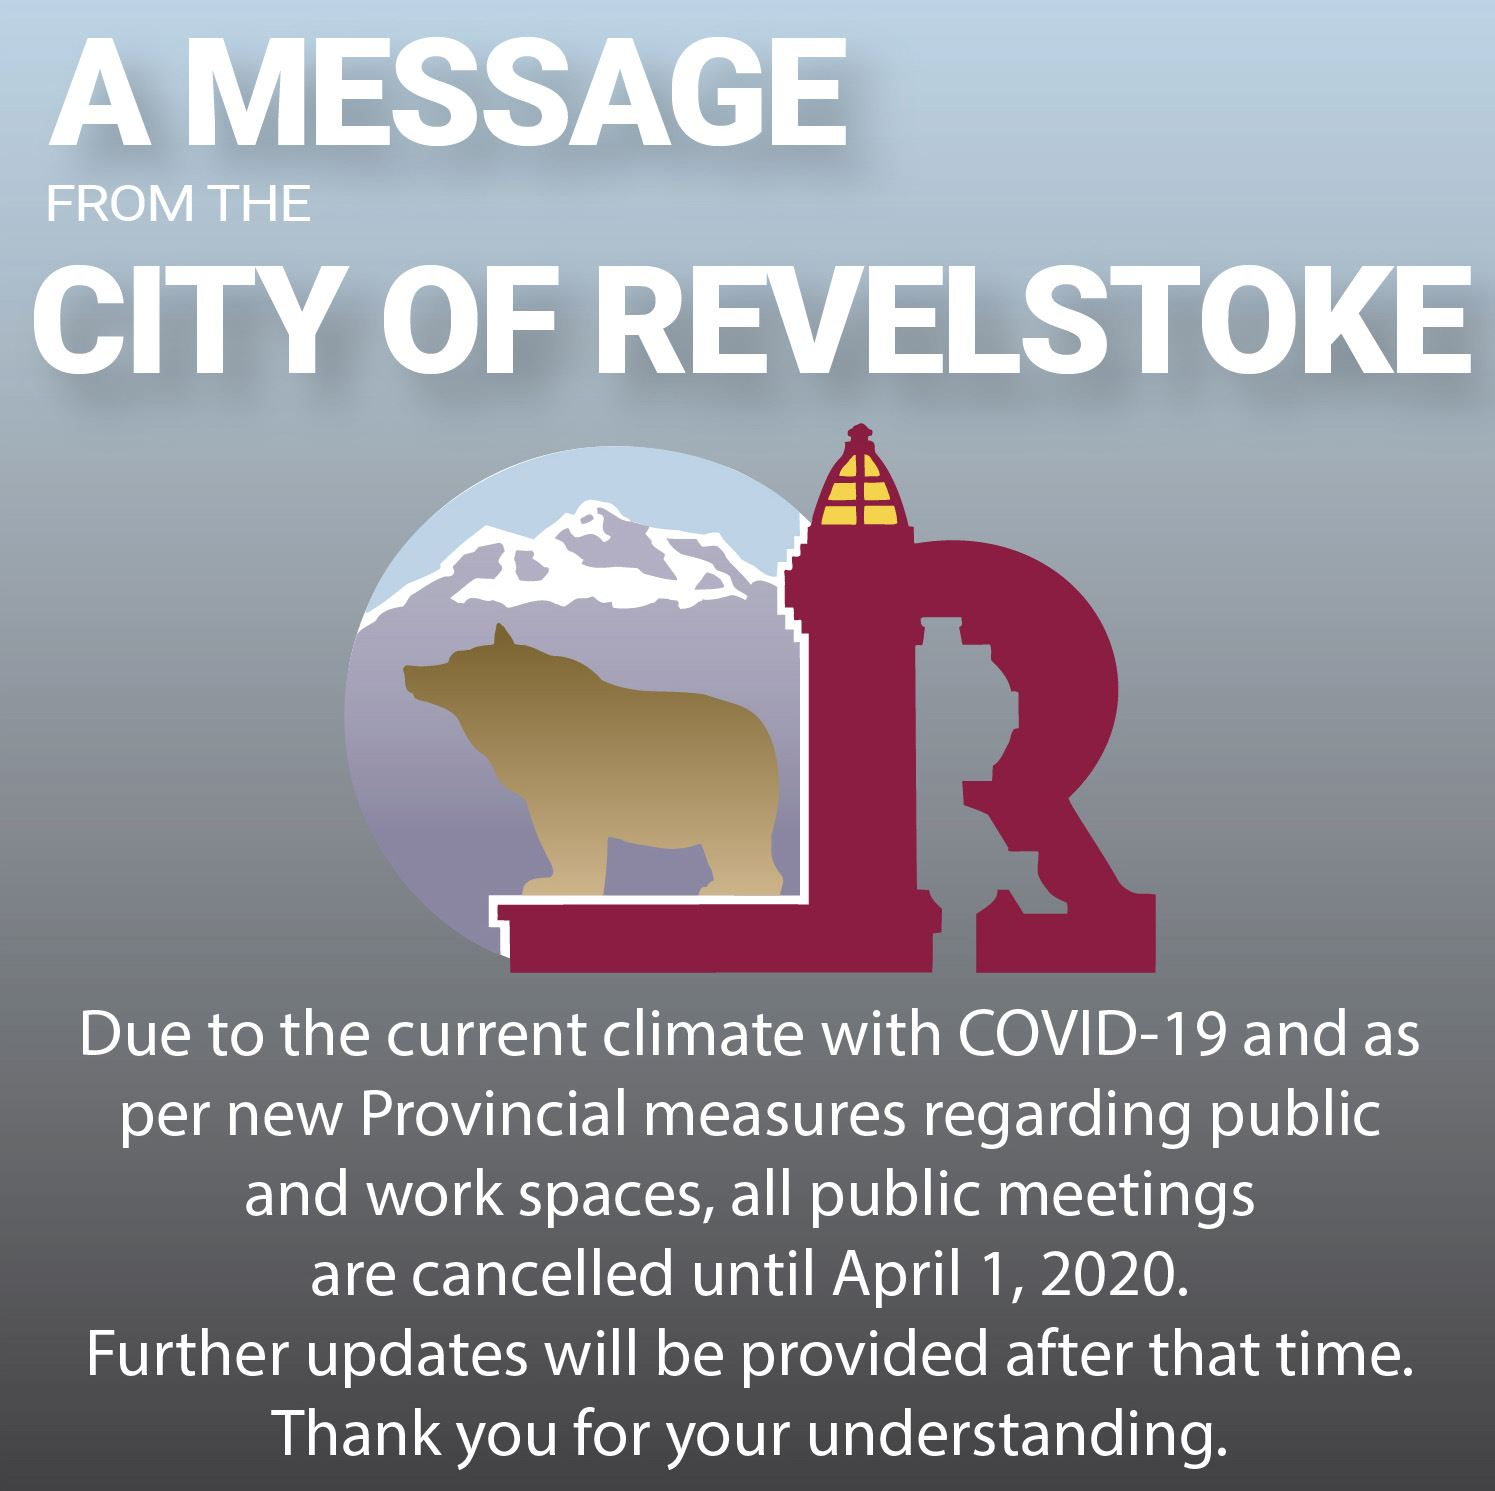 COVID-19-public meetings cancelled